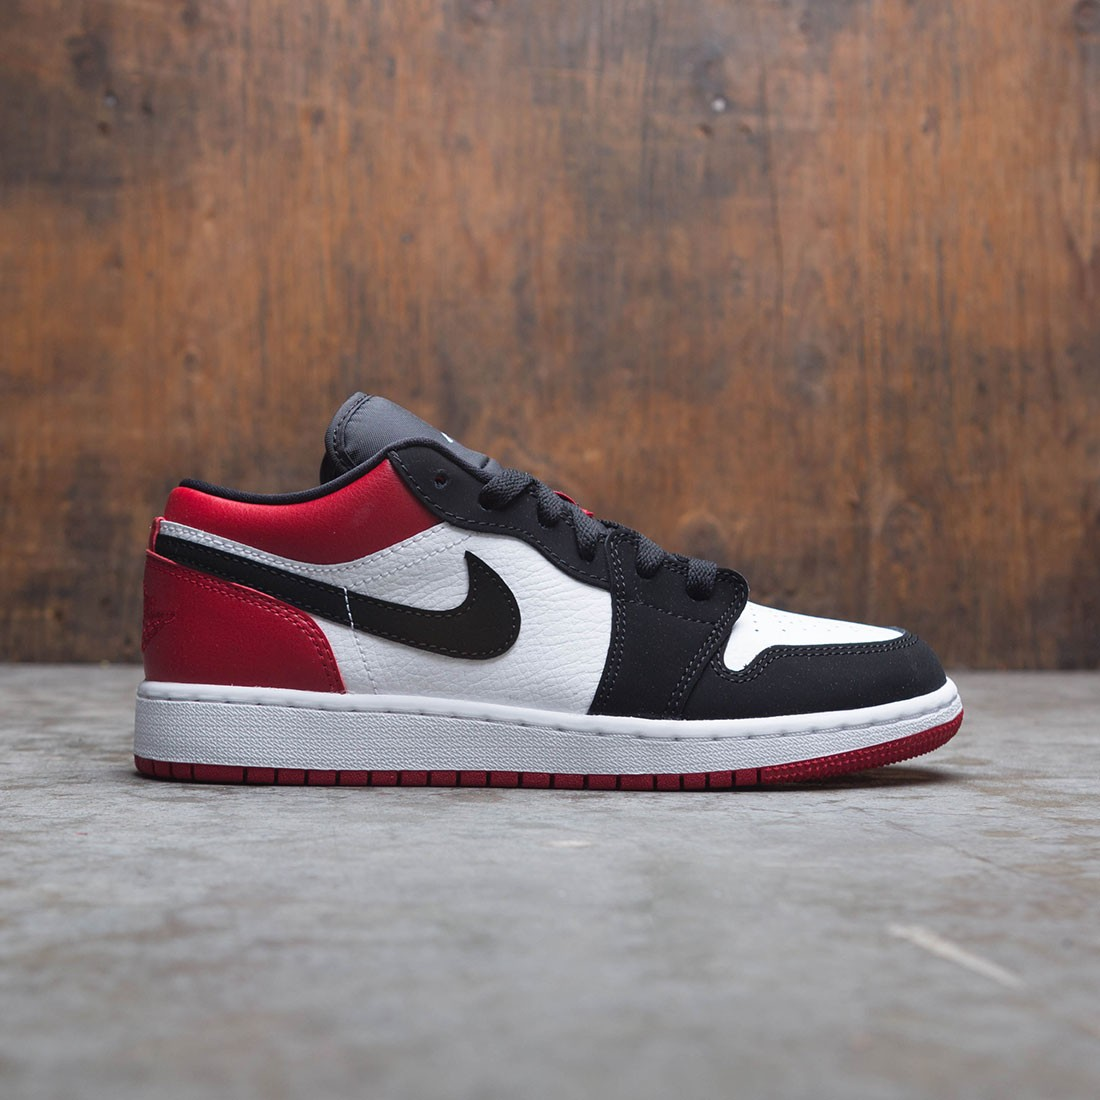 uk cheap sale best new images of Air Jordan 1 Low Big Kids (white / black-gym red)